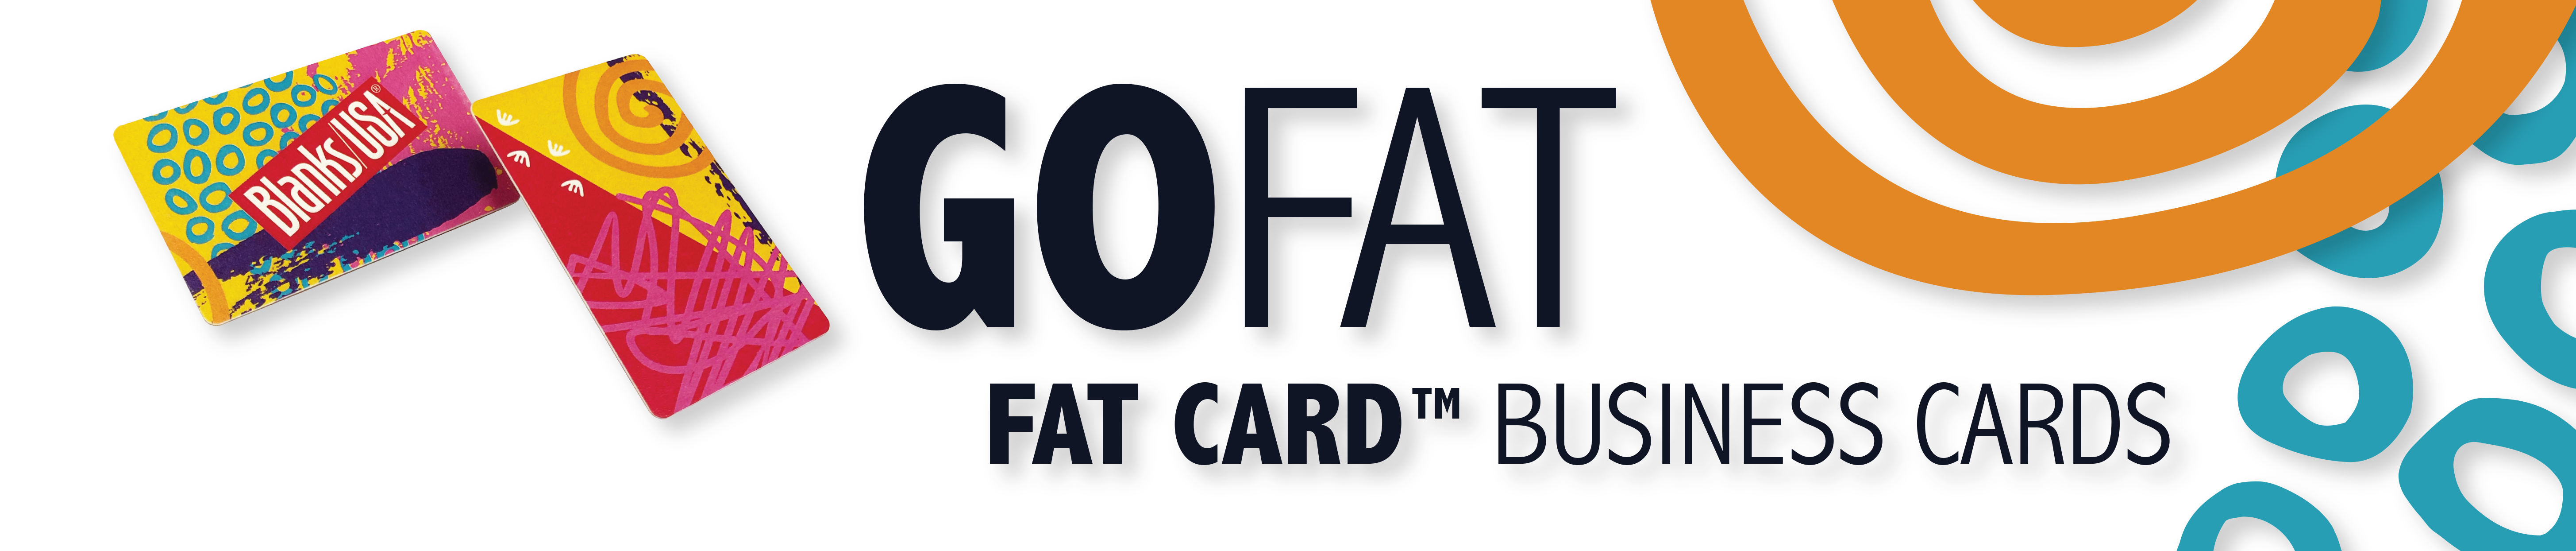 GO FAT - Fat Card™ Business Cards